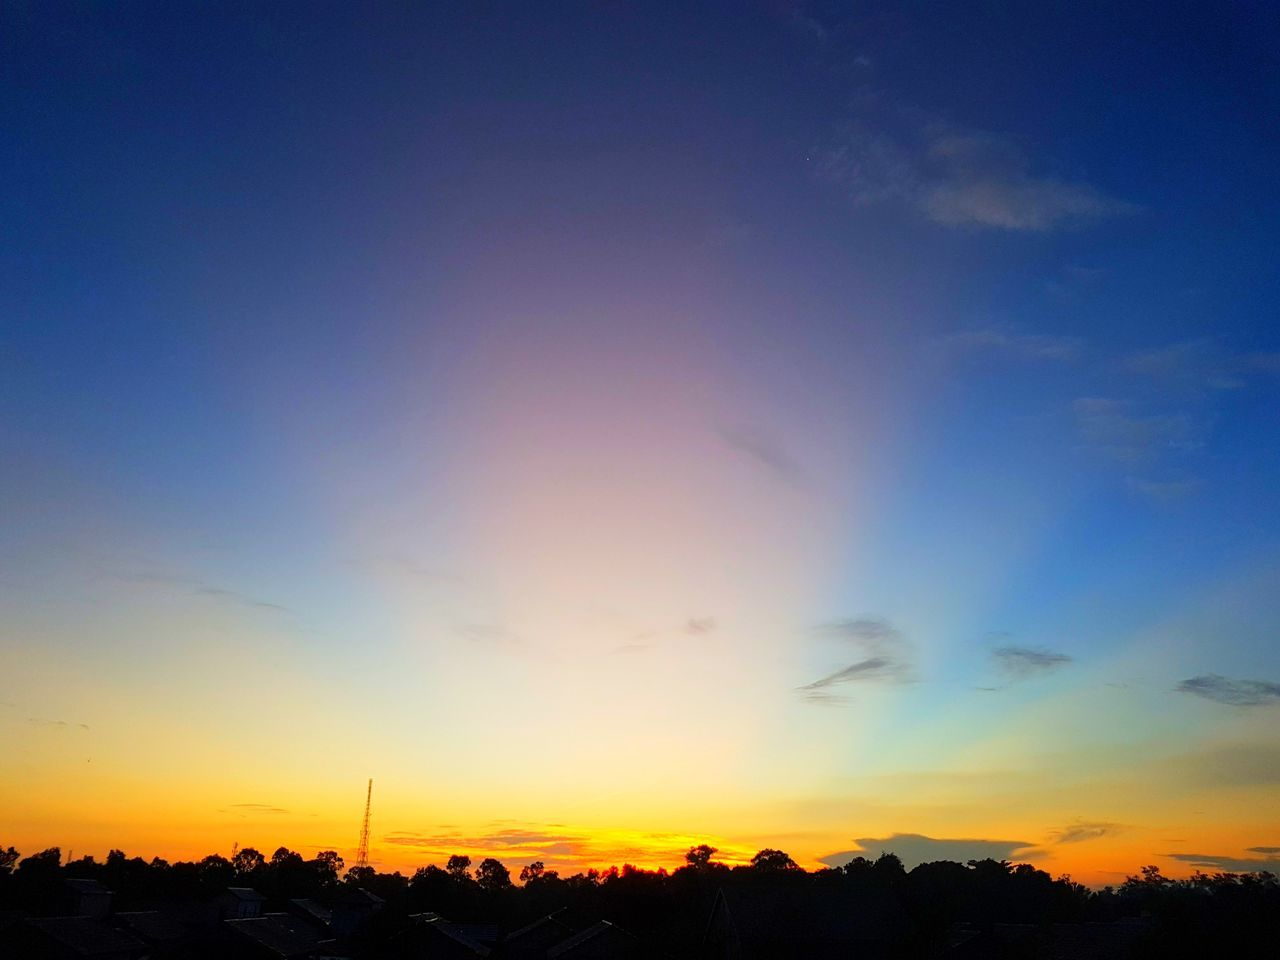 S7 Edge Photography Samsung Galaxy S7 Edge Gold Colored Beauty In Nature Scenics Rural Scene Dramatic Sky Tranquility Silhouette Landscape Landscape_Collection Nature Cloud - Sky Outdoors Sky Sun Beauty Day Sunrise... Sunrise_Collection Morning Sky Morning View Sunrise Sunrise Silhouette Morning Sun